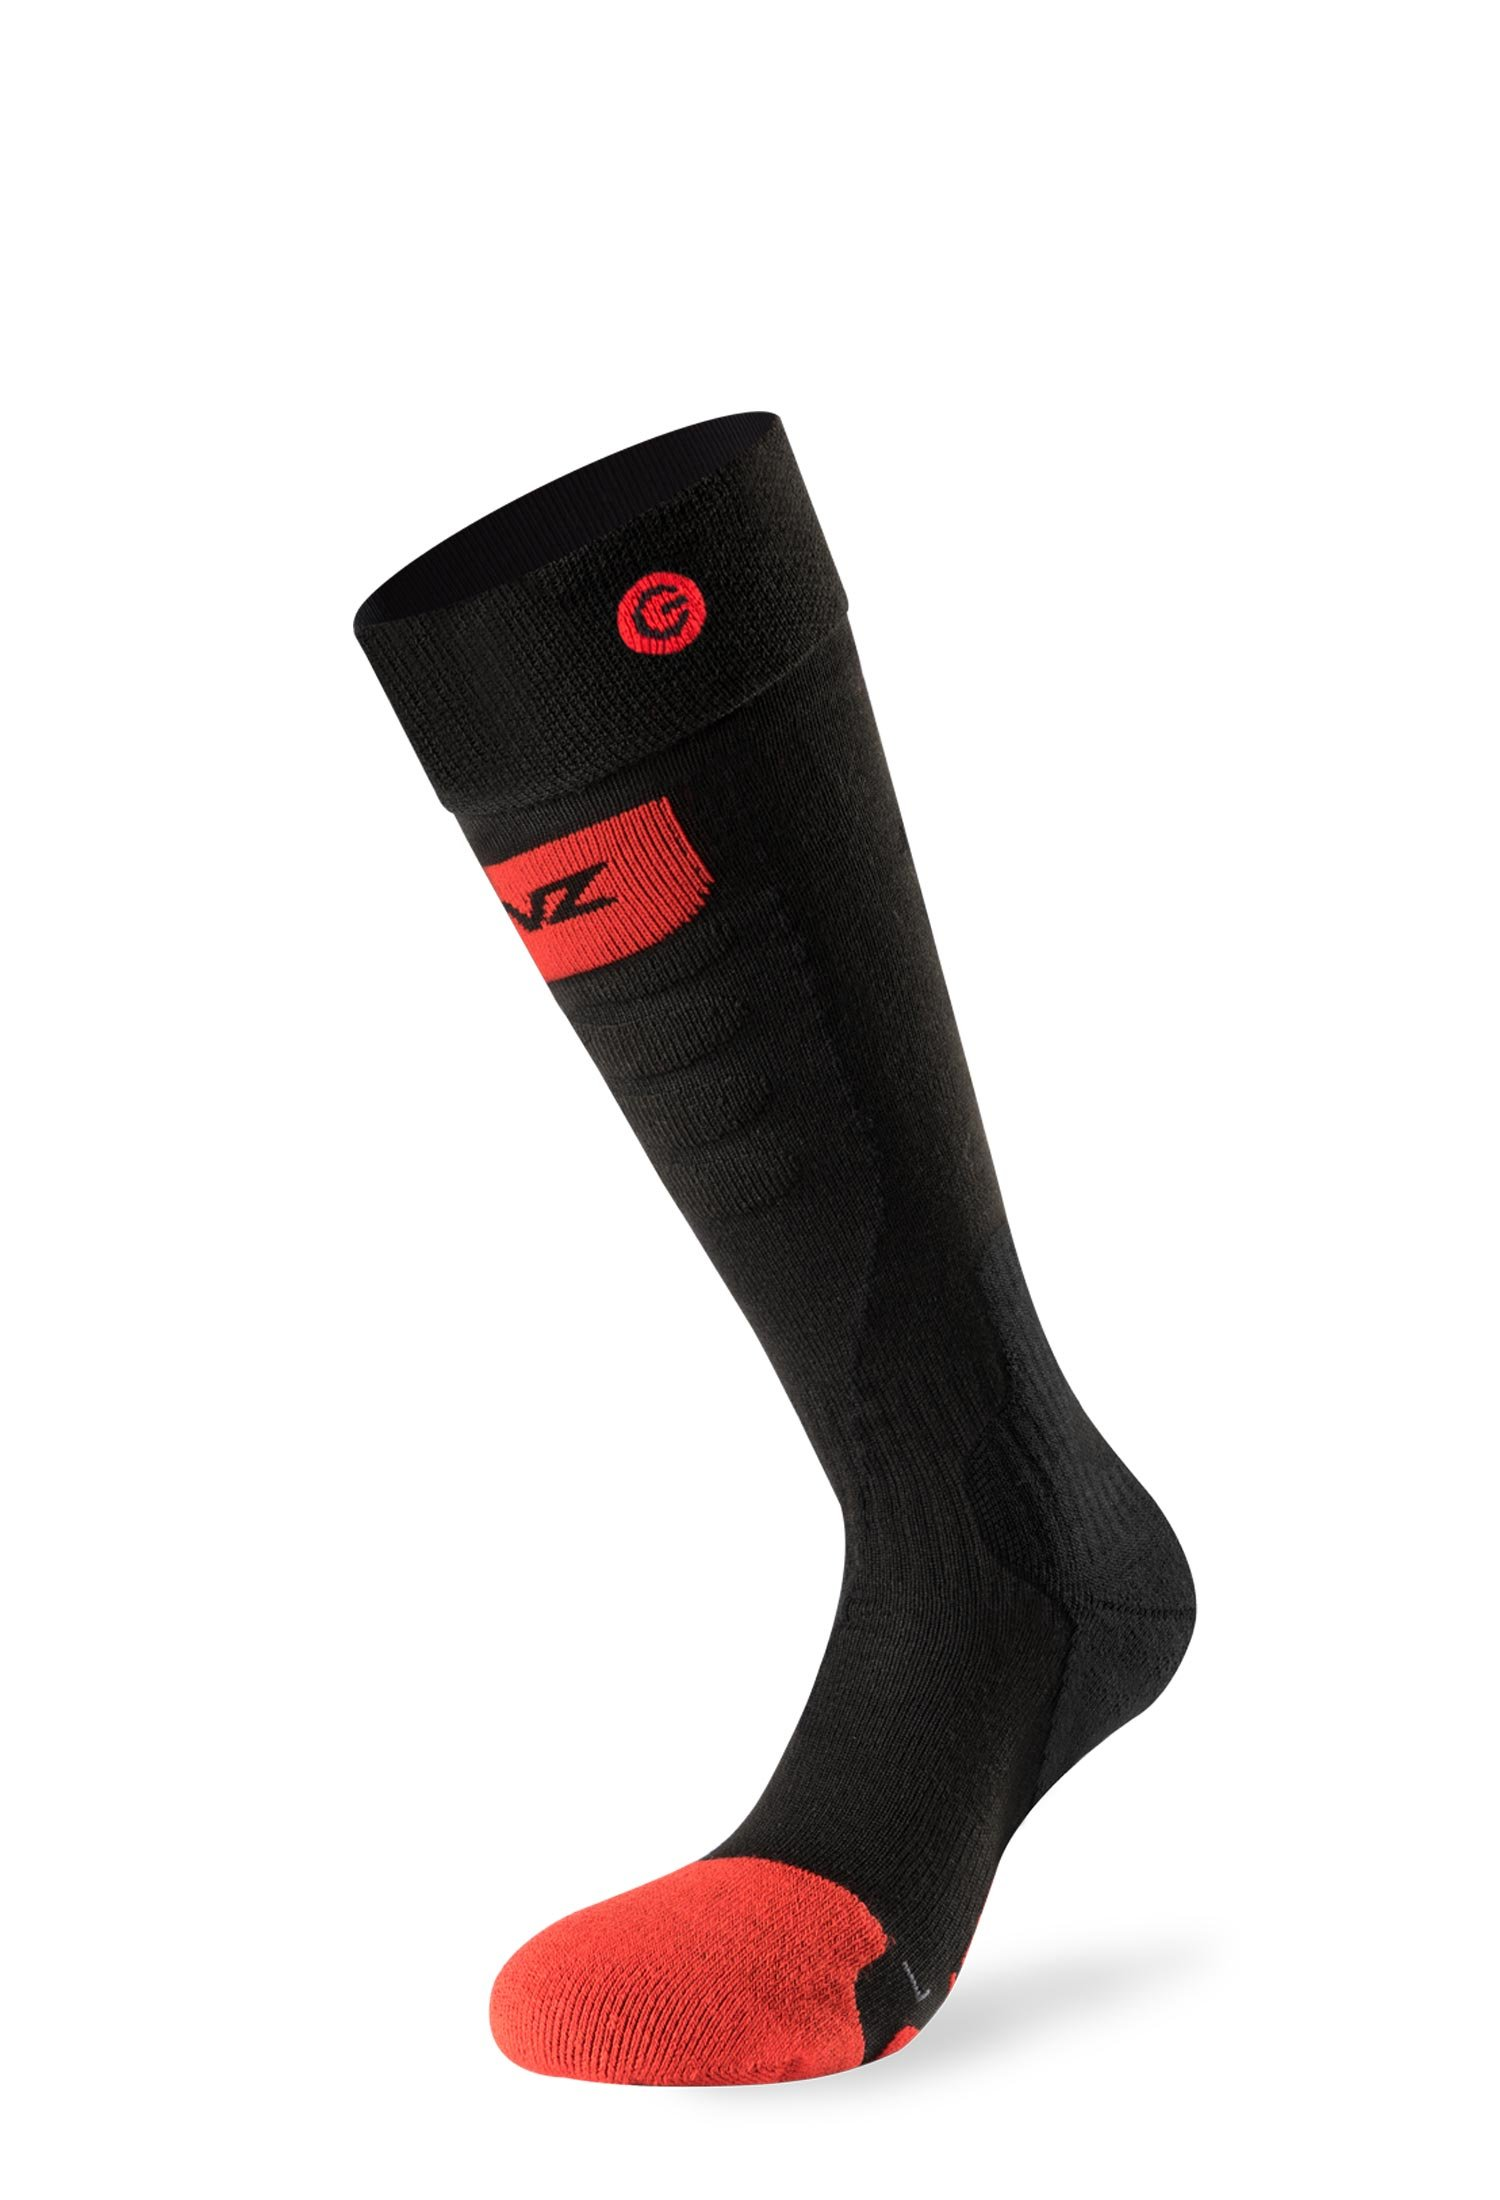 LENZ Heat Socks 5.0 Toe Cap Slim Fit